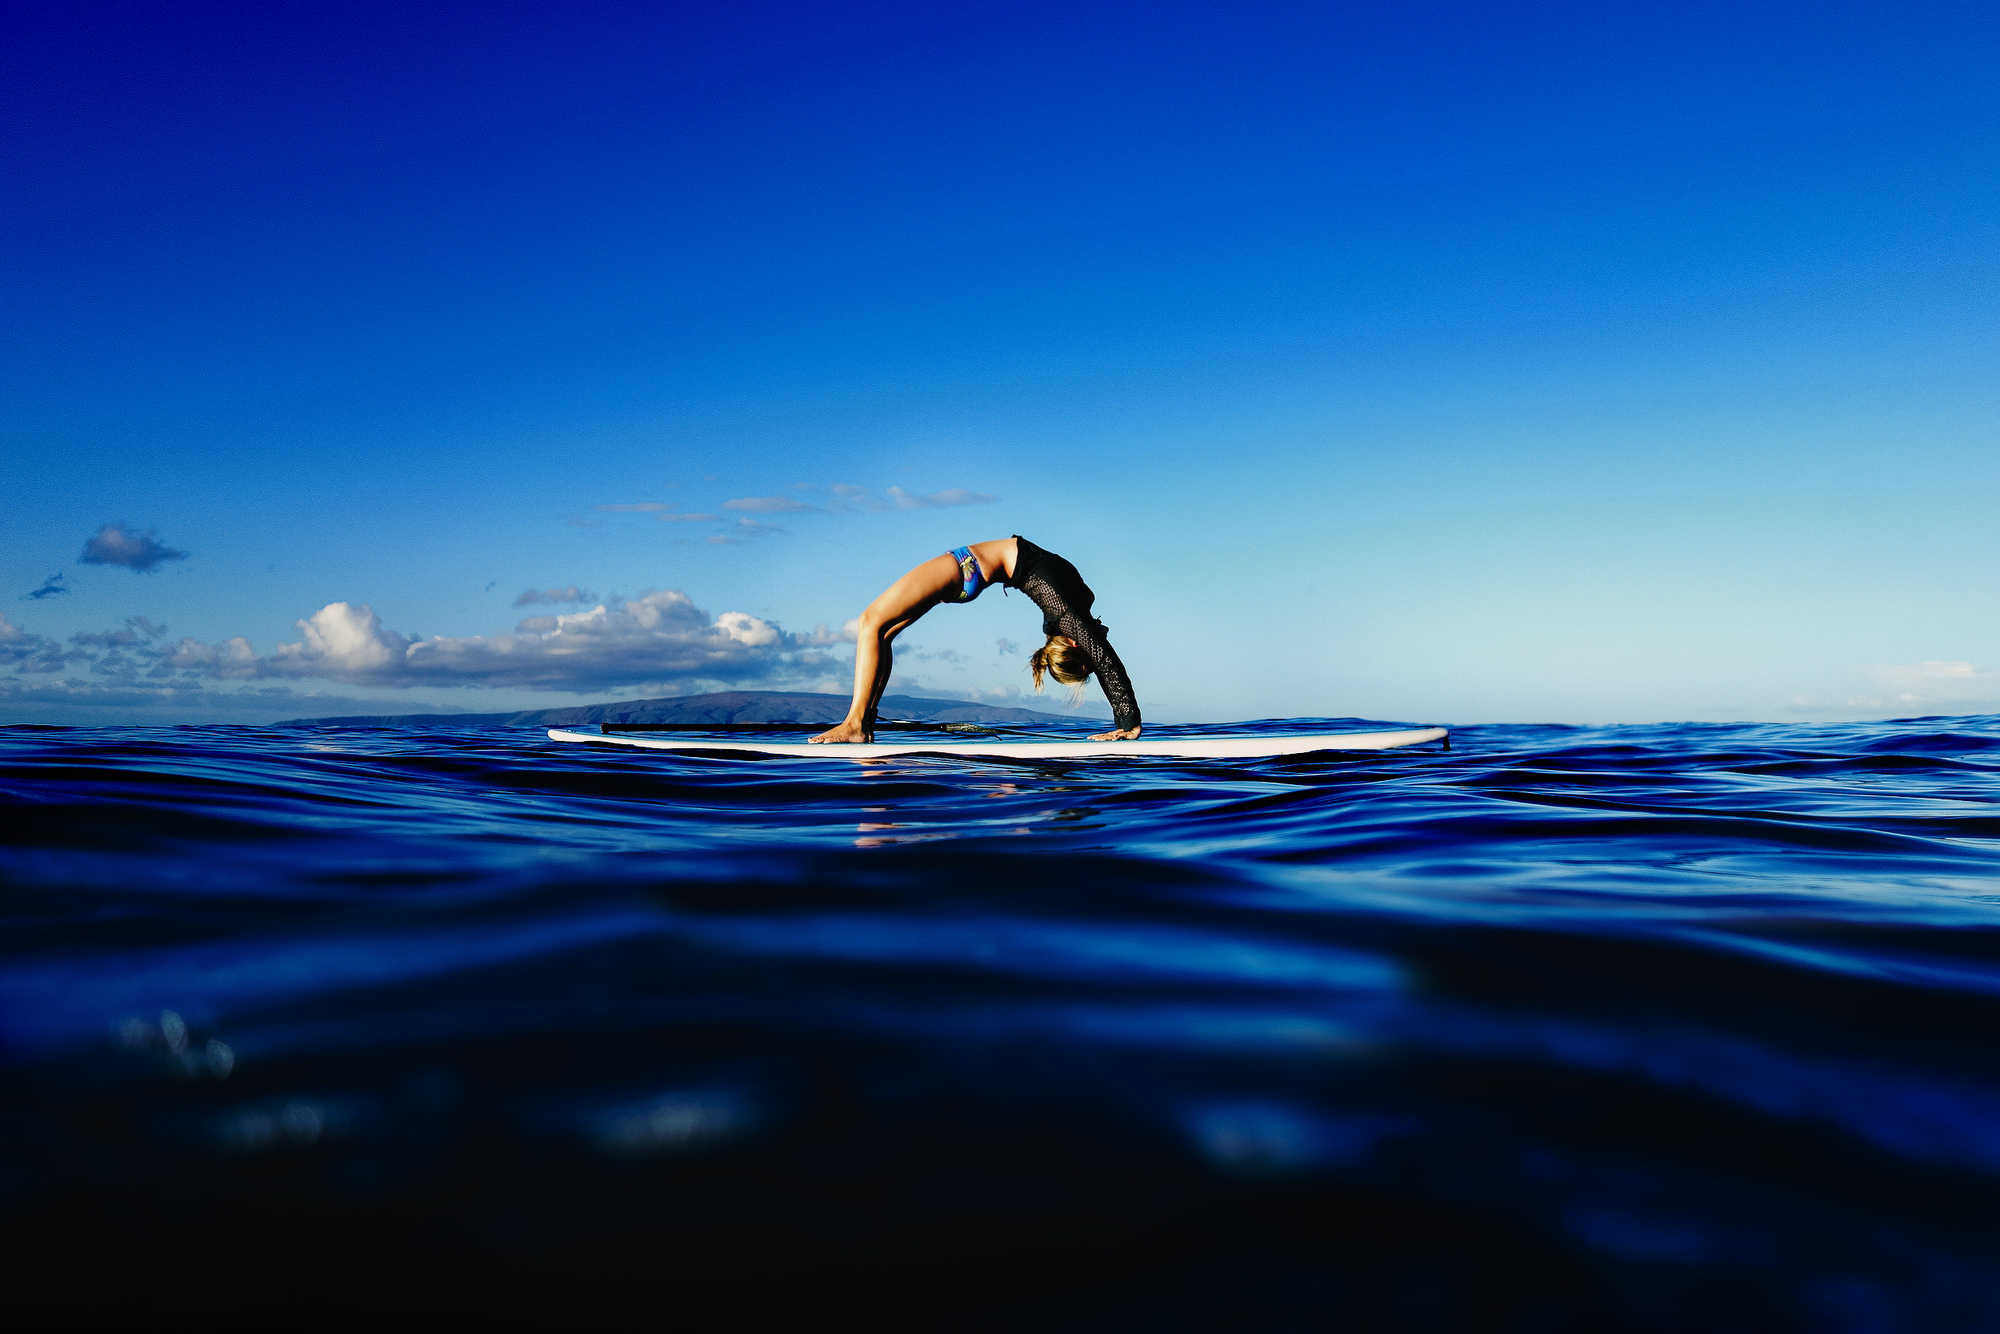 Four Seasons Resort Maui, Wailea, Hawaii. Stand Up Paddle Board Yoga branding portraits of Kathryn Budig by Stark Photography.